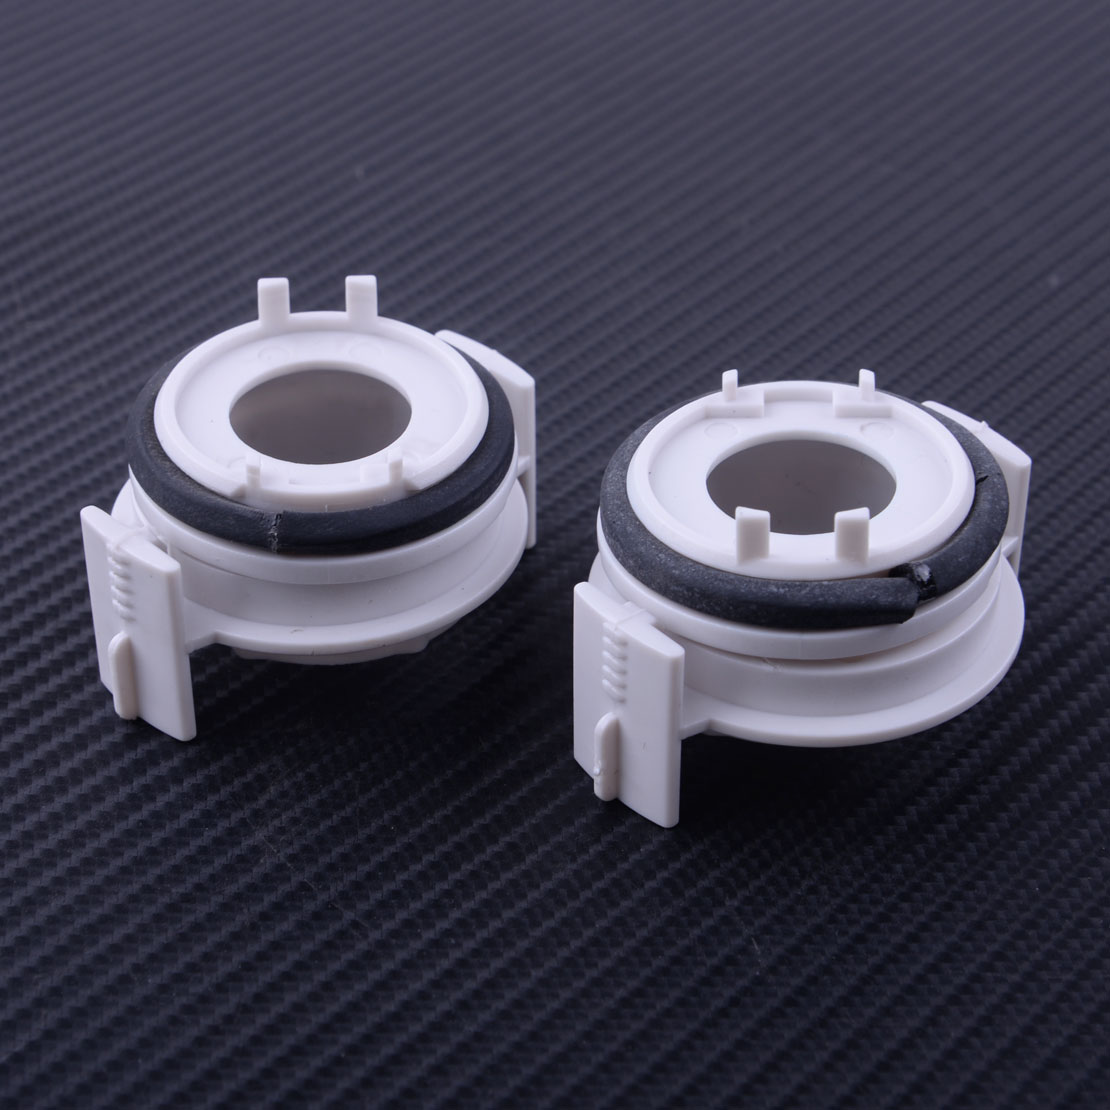 CITALL 2PCS H7 Headlight HID <font><b>LED</b></font> Retainer Holder <font><b>Adapter</b></font> Fit for <font><b>BMW</b></font> <font><b>E46</b></font> 3 Series 325i 325ci 330i 330ci 1998-2002 2003 2004 2005 image